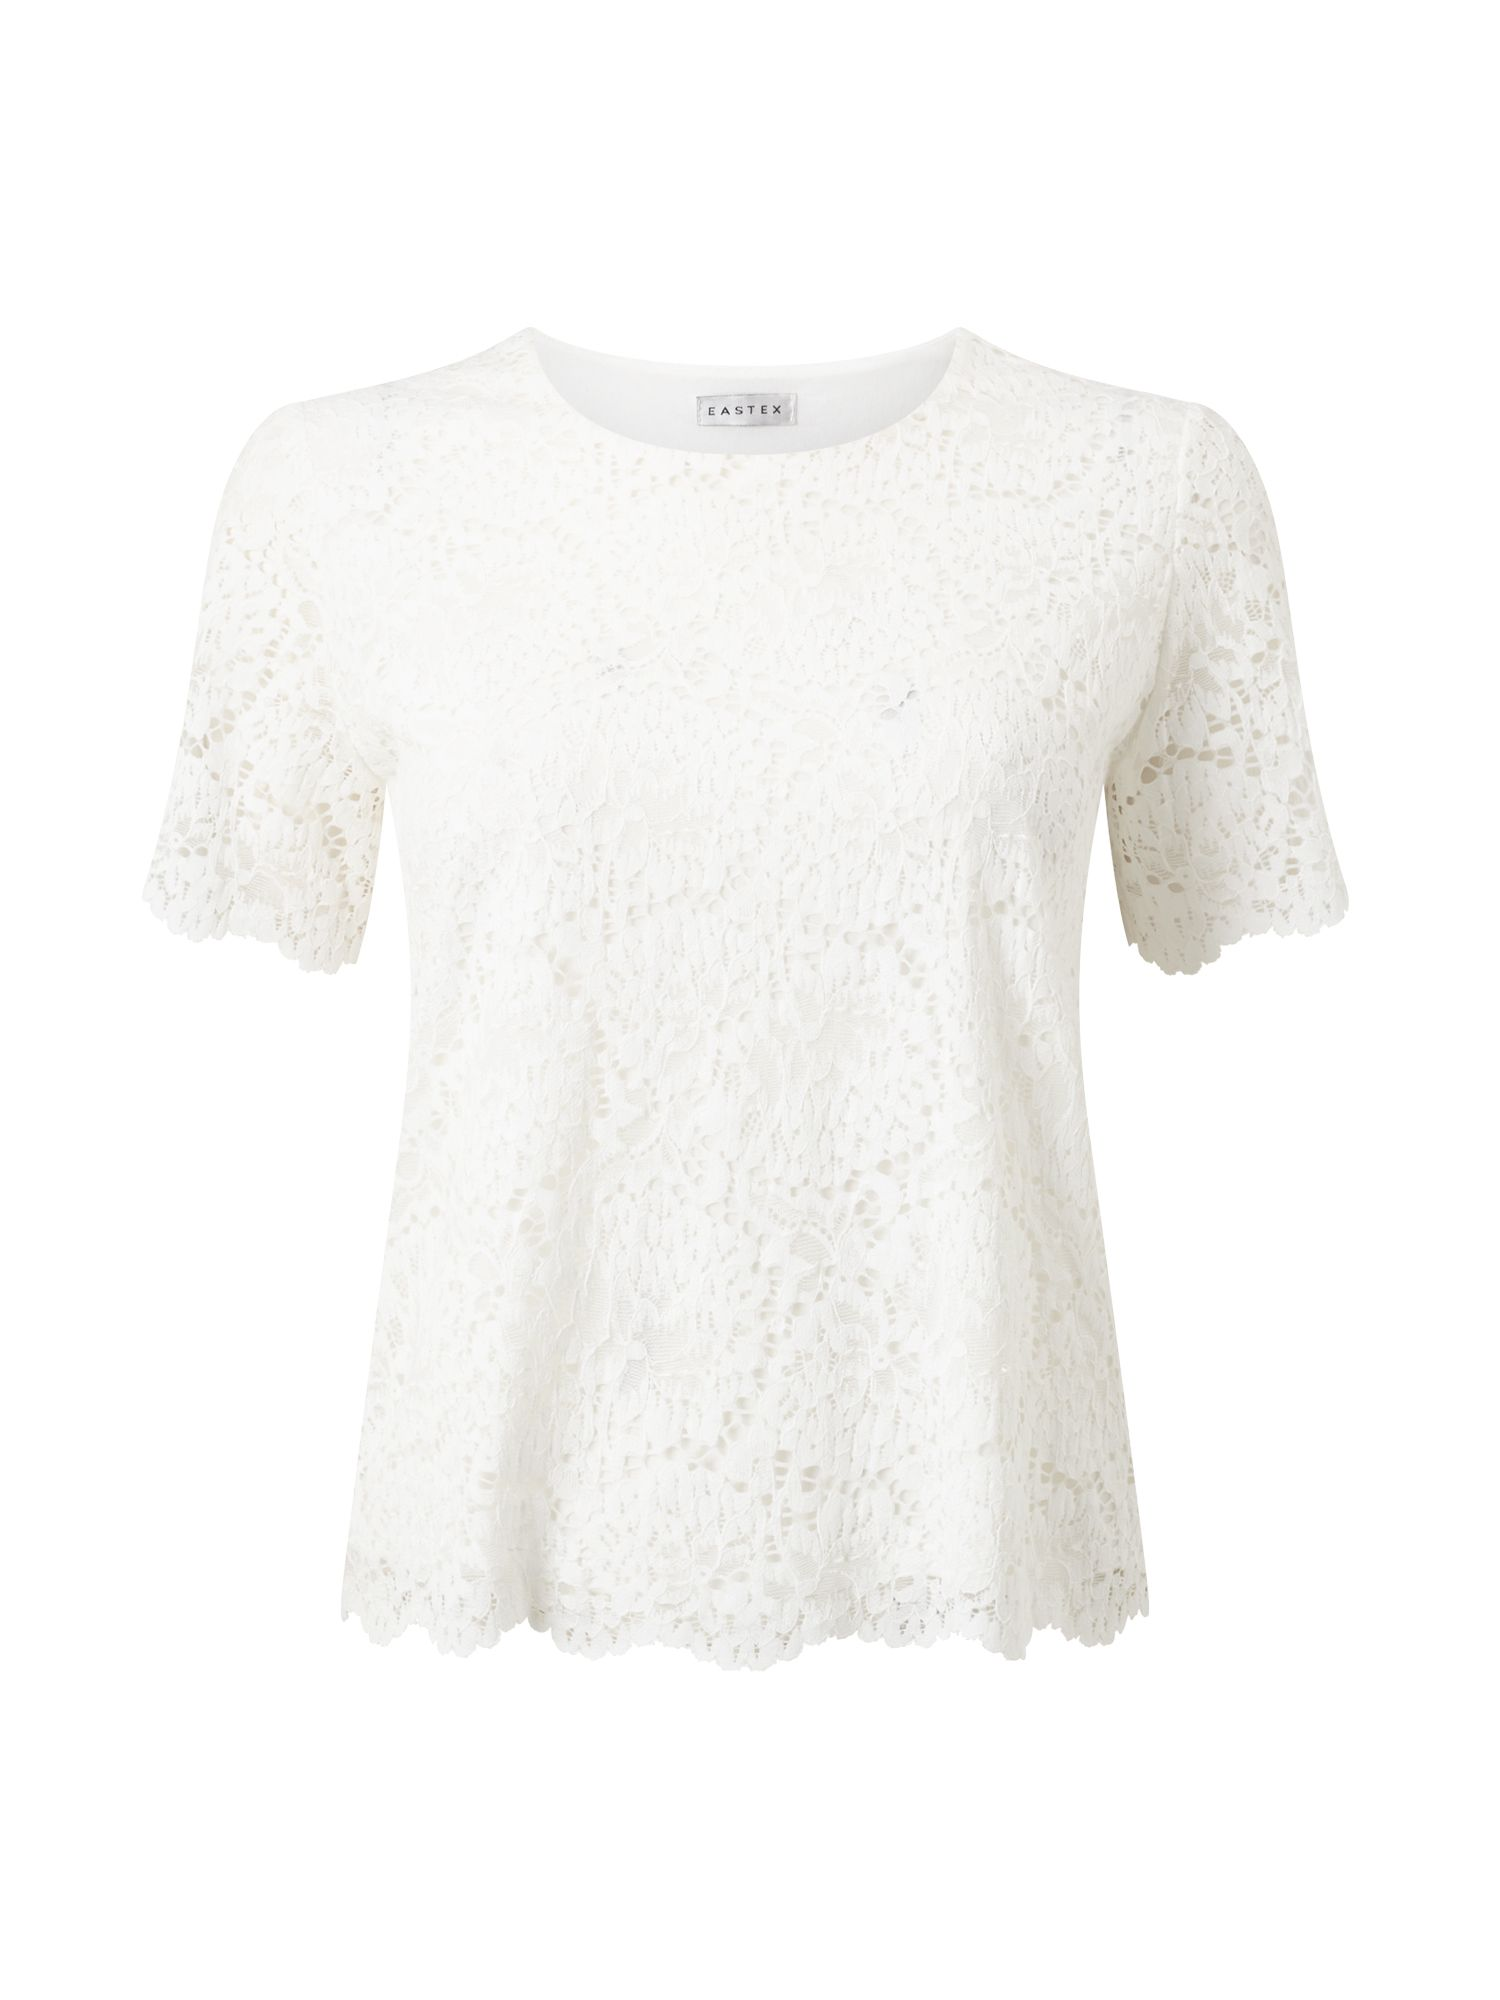 Eastex Ivory Lace Top, Neutral